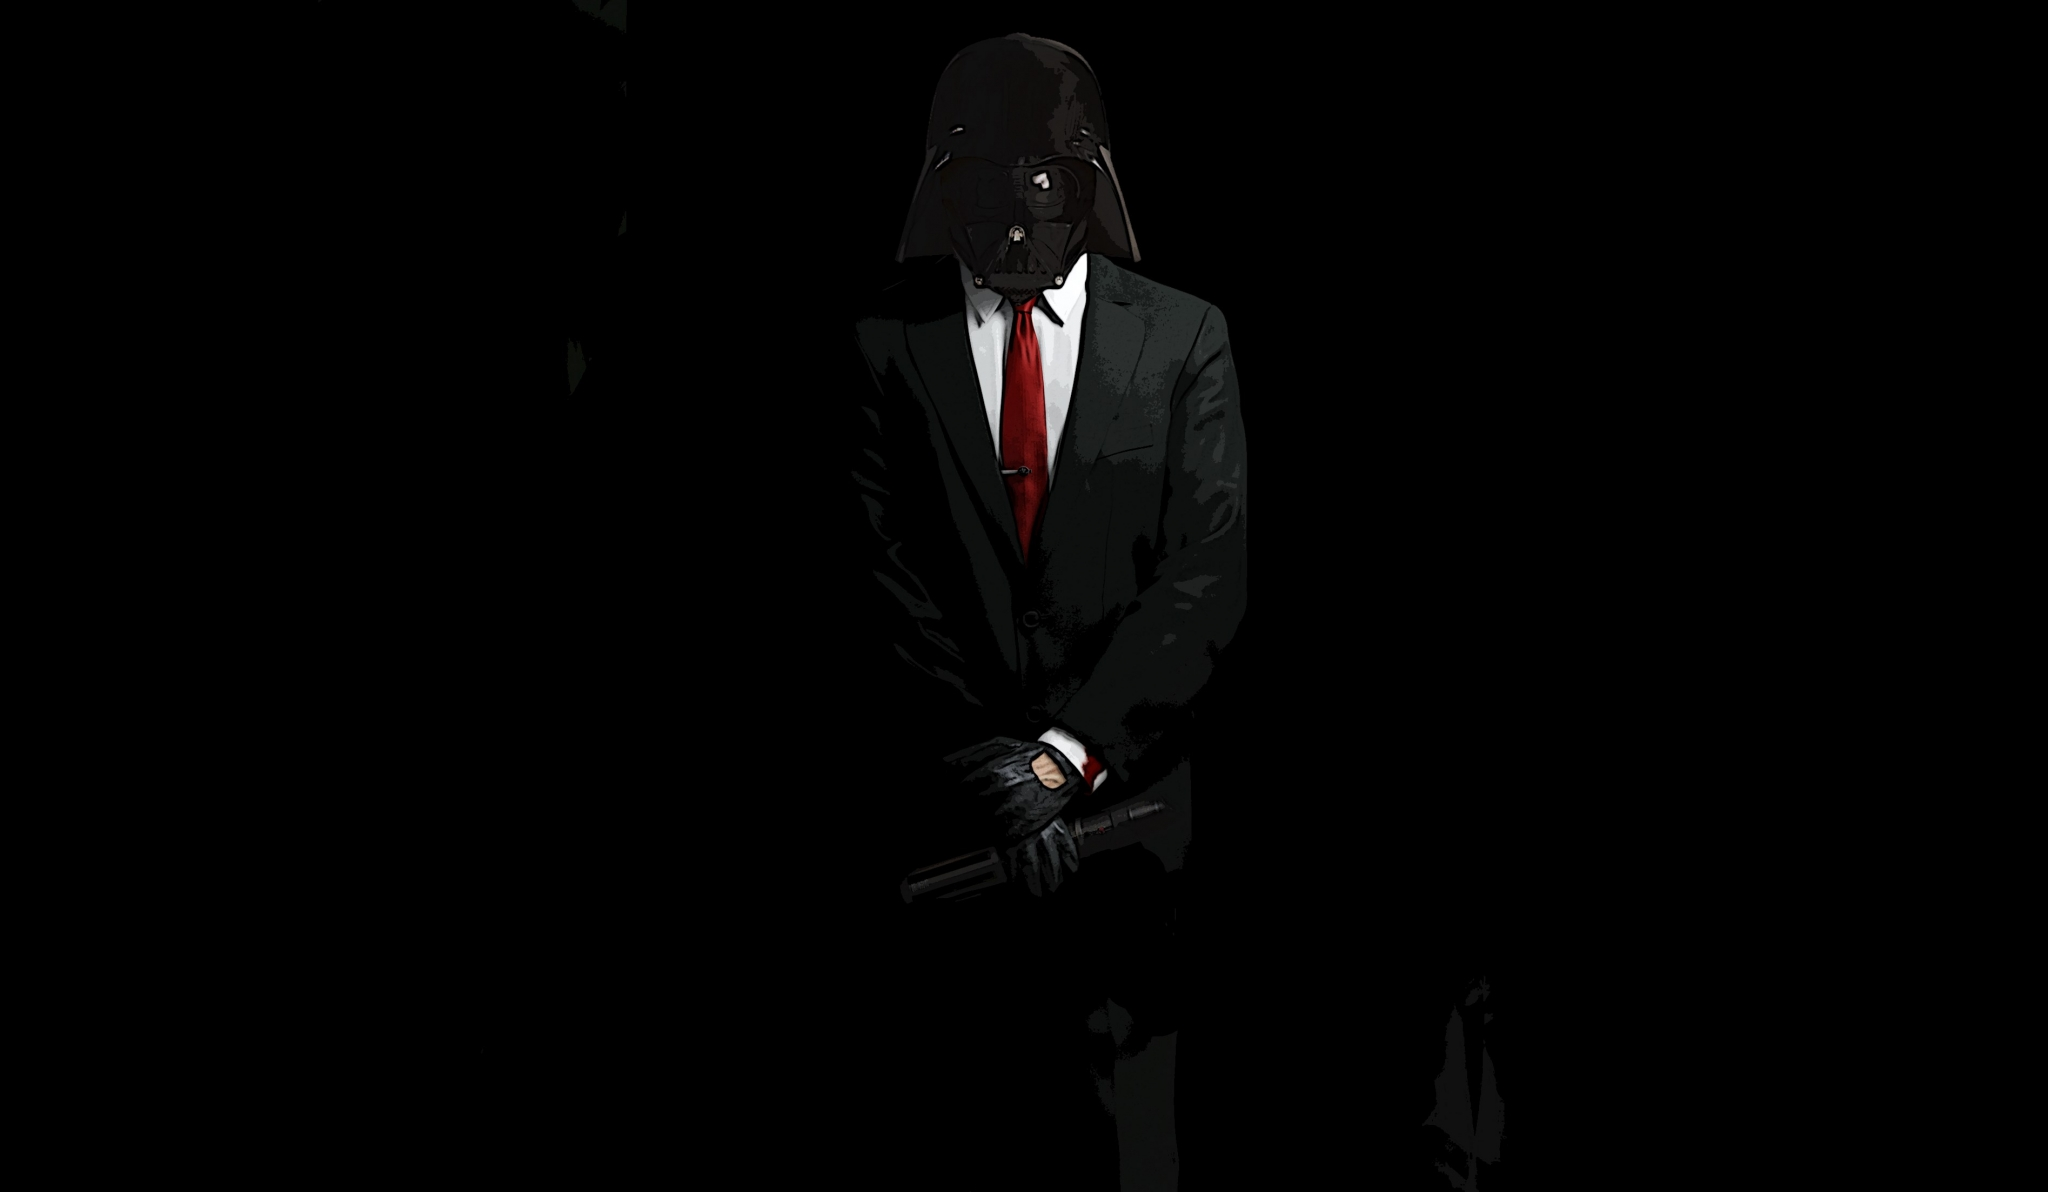 Mafia Gangster Wallpapers High Quality Resolution Is Cool Wallpapers